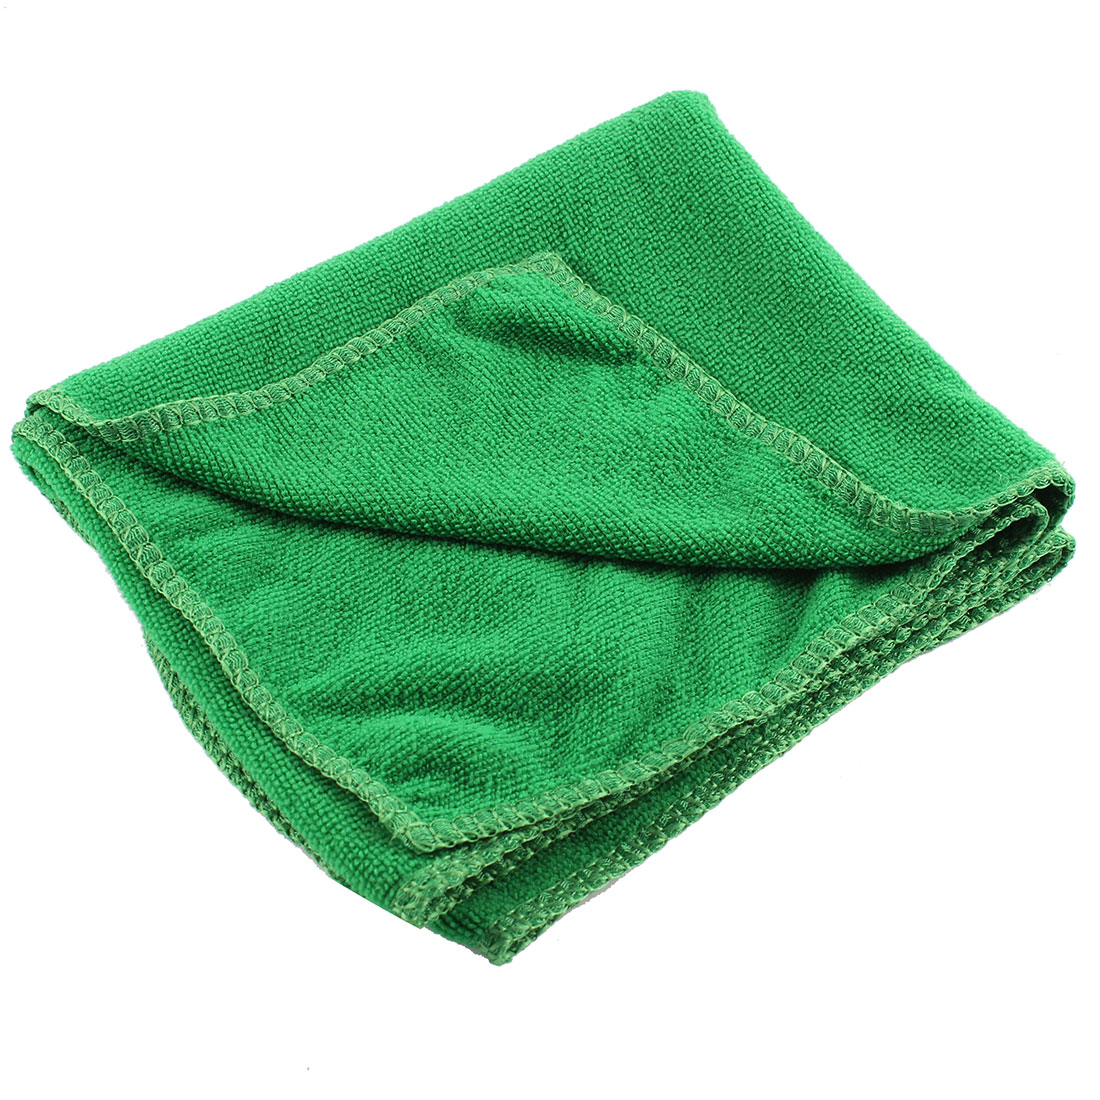 70cm x 30cm Green Microfiber Rectangle Absorbent Drying Bath Shower Facial Towel Sheet Facecloth Washcloth